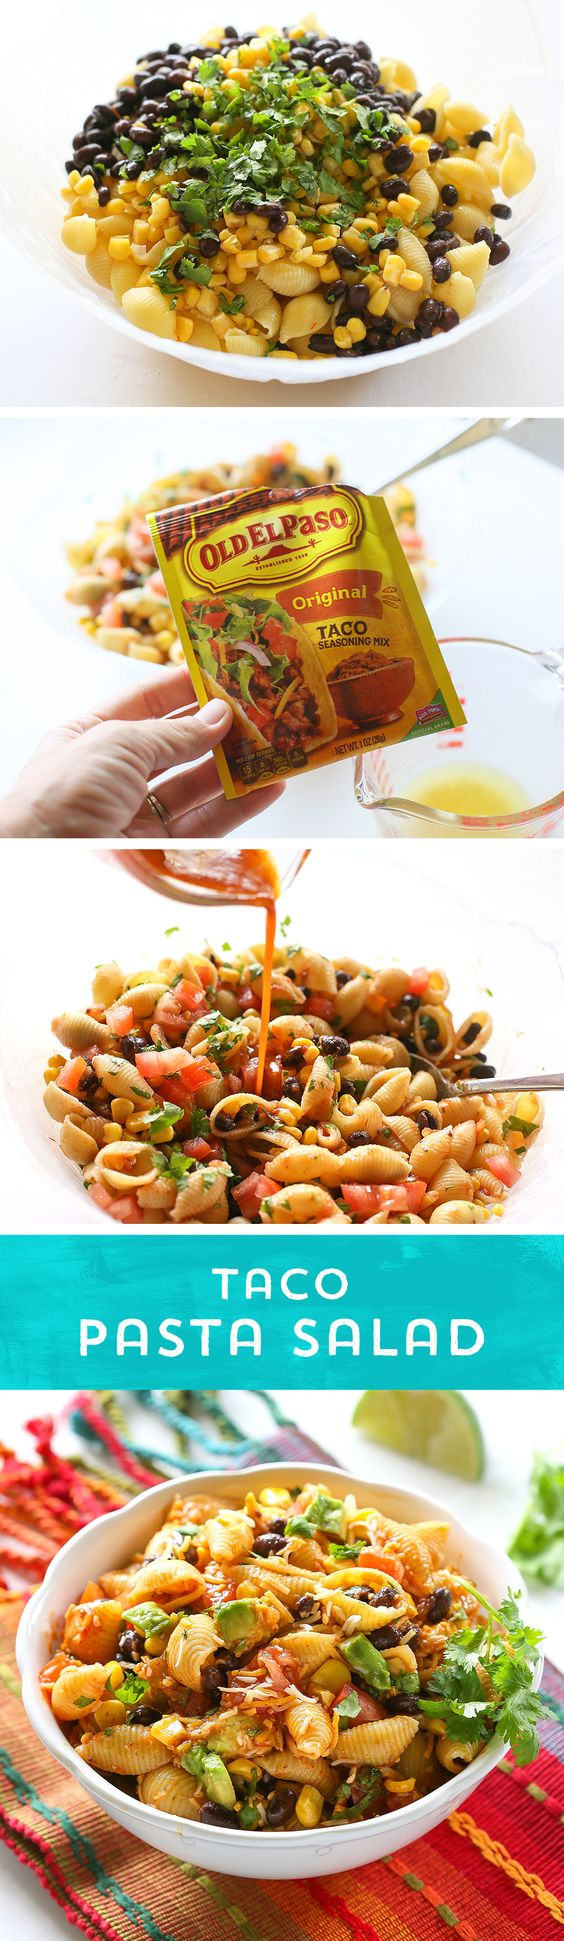 Need an easy dinner idea, or a party dish to share? This Taco Pasta Salad from @GirlWhoAte is perfect! It comes together quickly, and you can control the spice- just add more or less Old El Paso Taco Seasoning™ and your favorite salsa! Stand out at the party with this pasta salad with southwestern flair!: